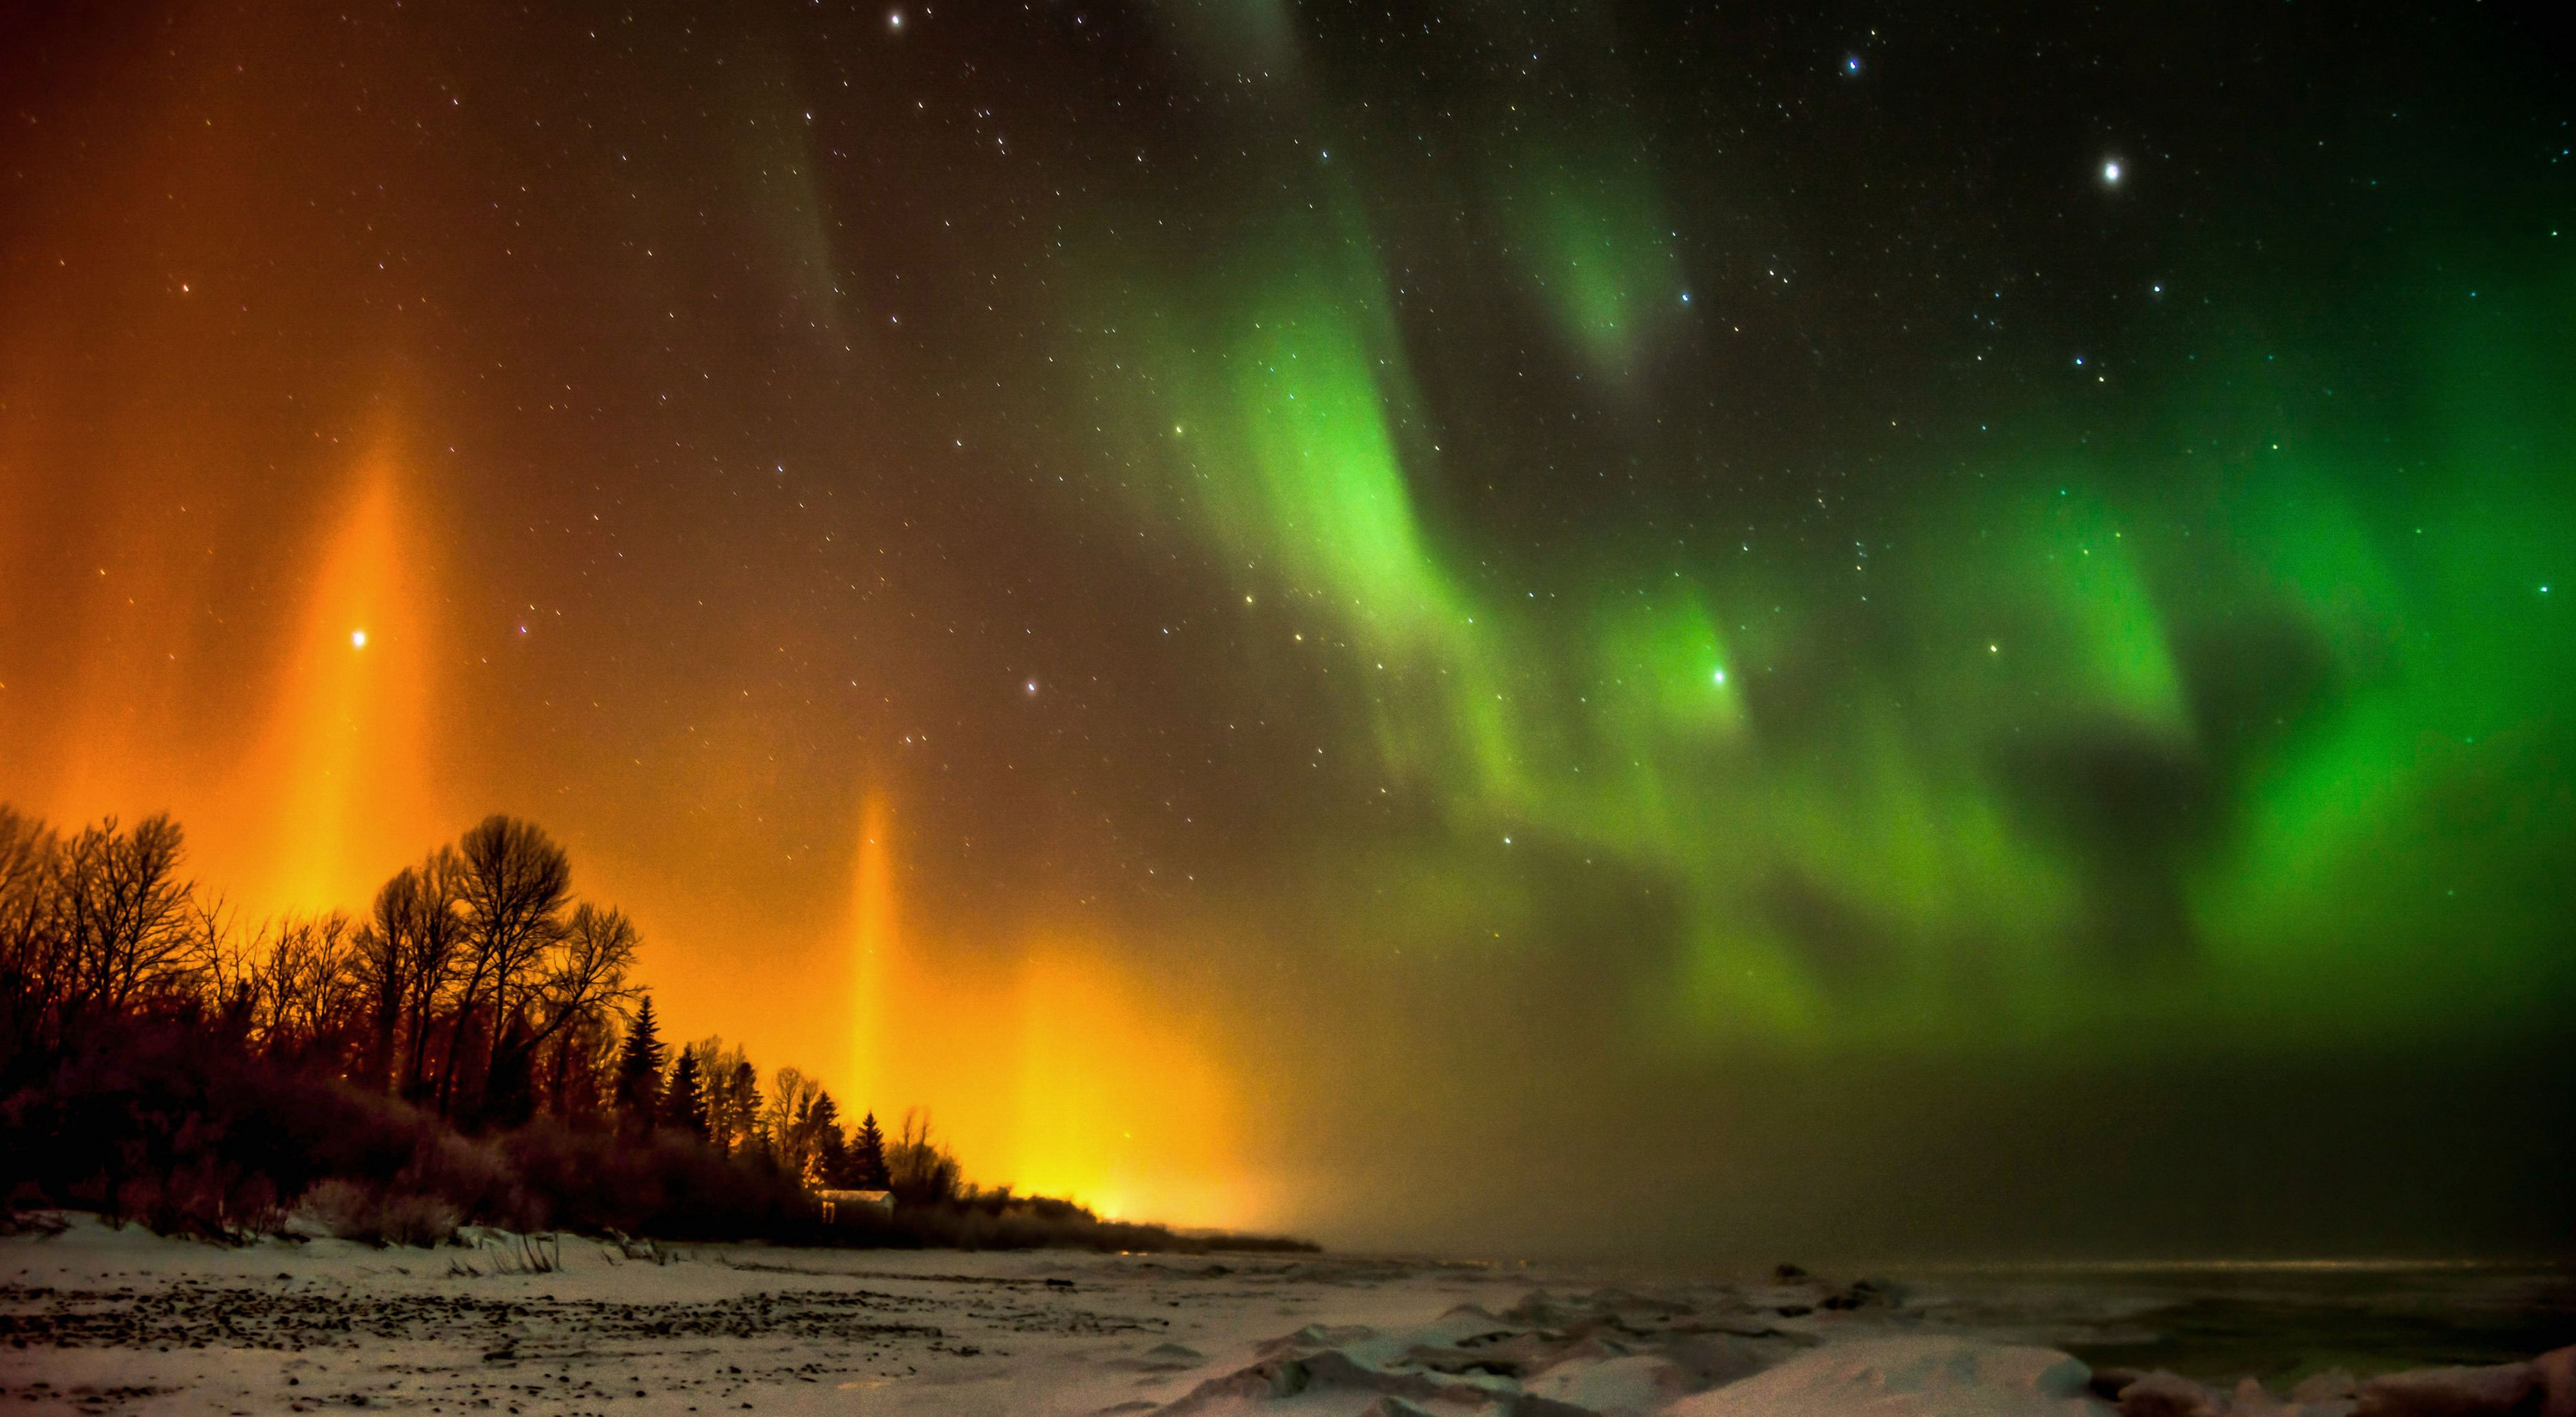 Northern Lights; South shore of Lesser Slave Lake in Alberta, Canada